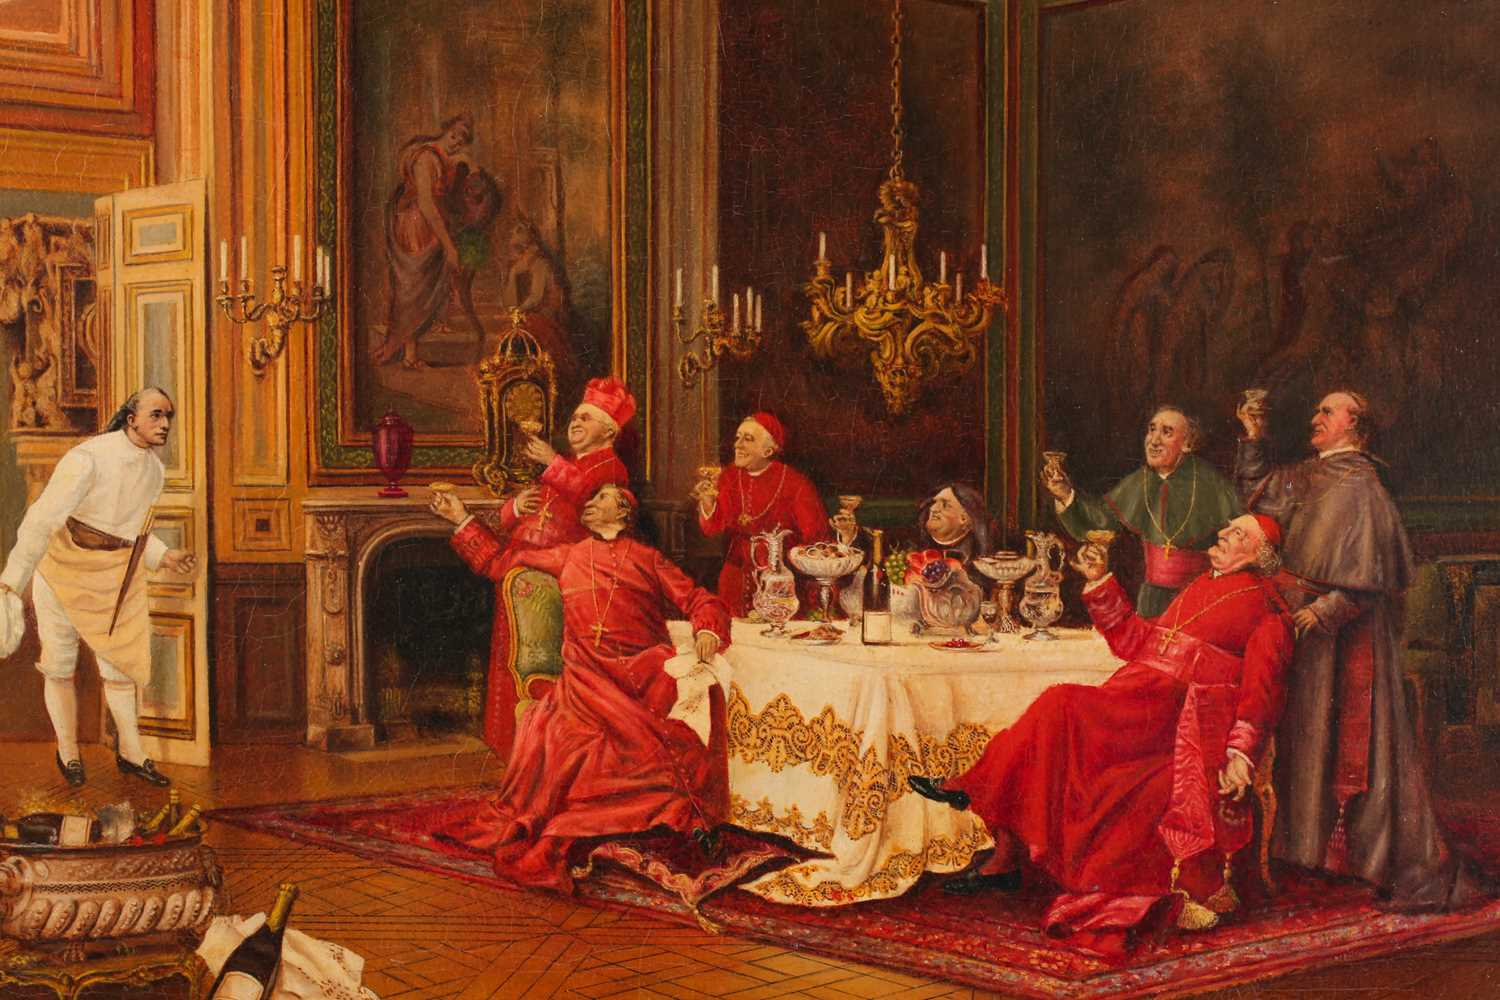 After Leo Hermann (1853-1927), a group of Cardinals raising a toast to a gentleman, seated in an - Image 3 of 3